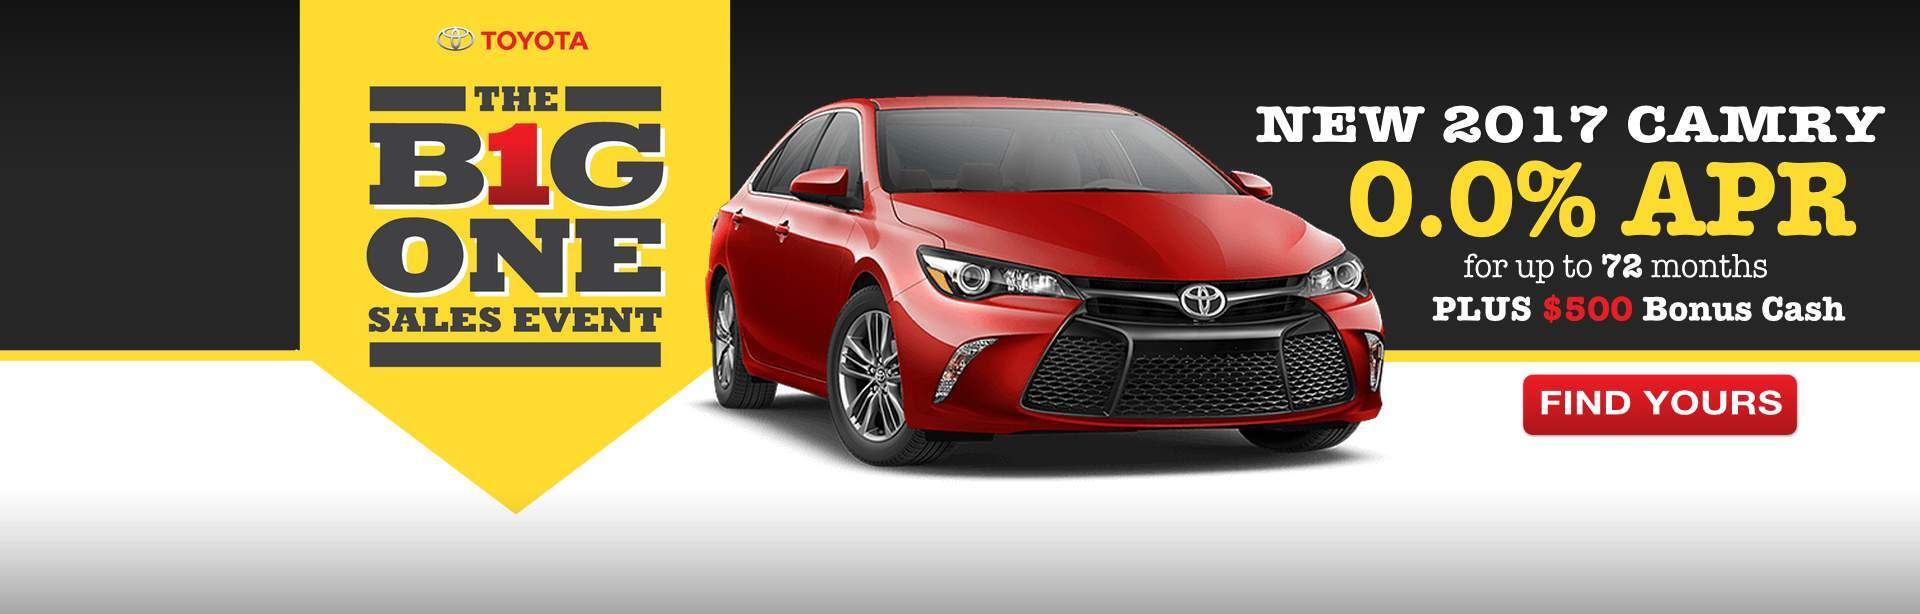 2017 Camry Offer